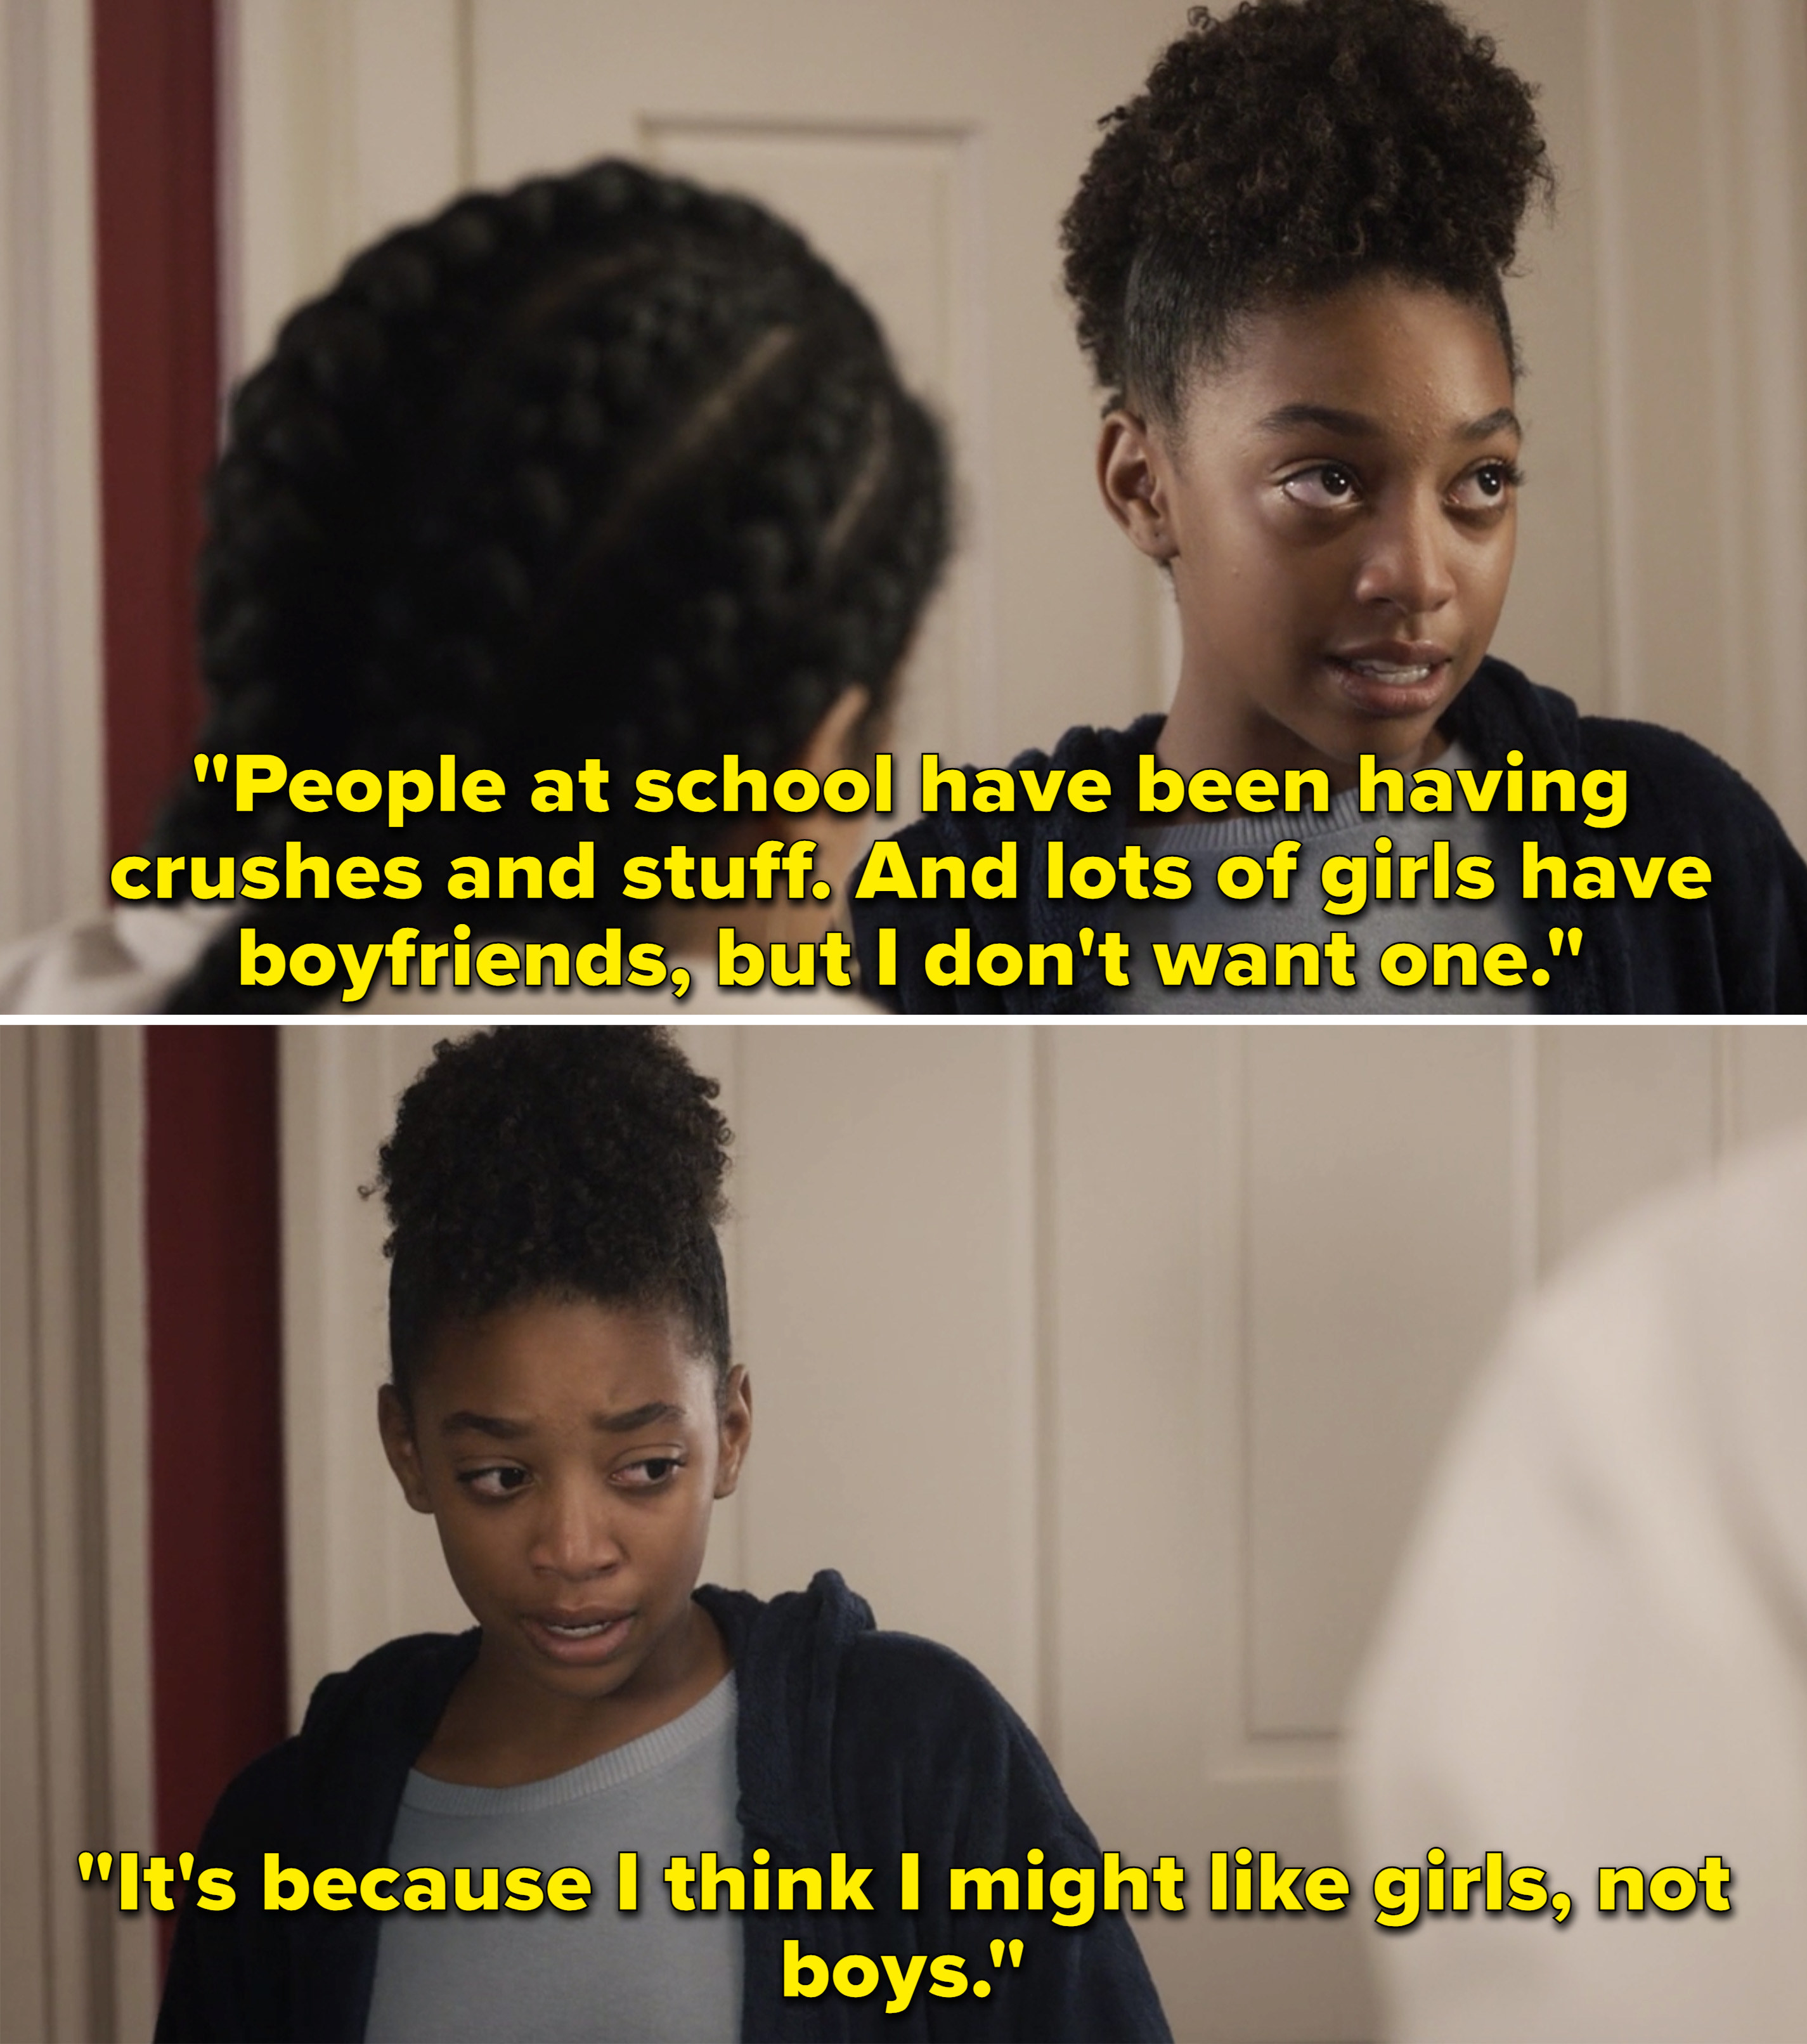 """Tess saying, """"Lots of girls have boyfriends, but I don't want one. It's because I think I might like girls, not boys"""""""